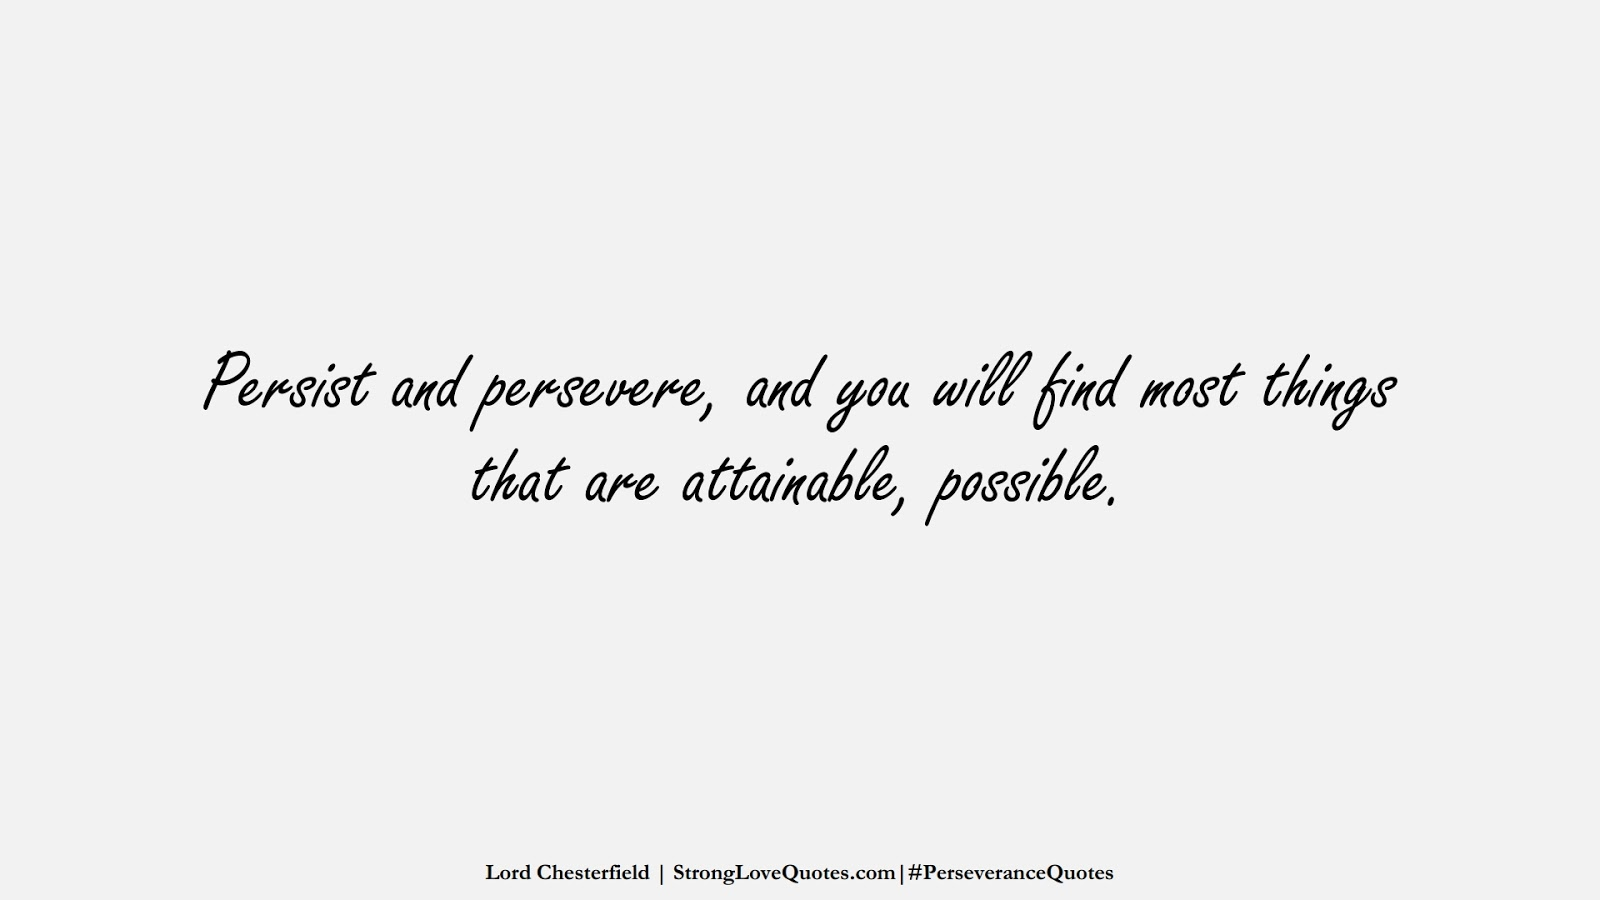 Persist and persevere, and you will find most things that are attainable, possible. (Lord Chesterfield);  #PerseveranceQuotes